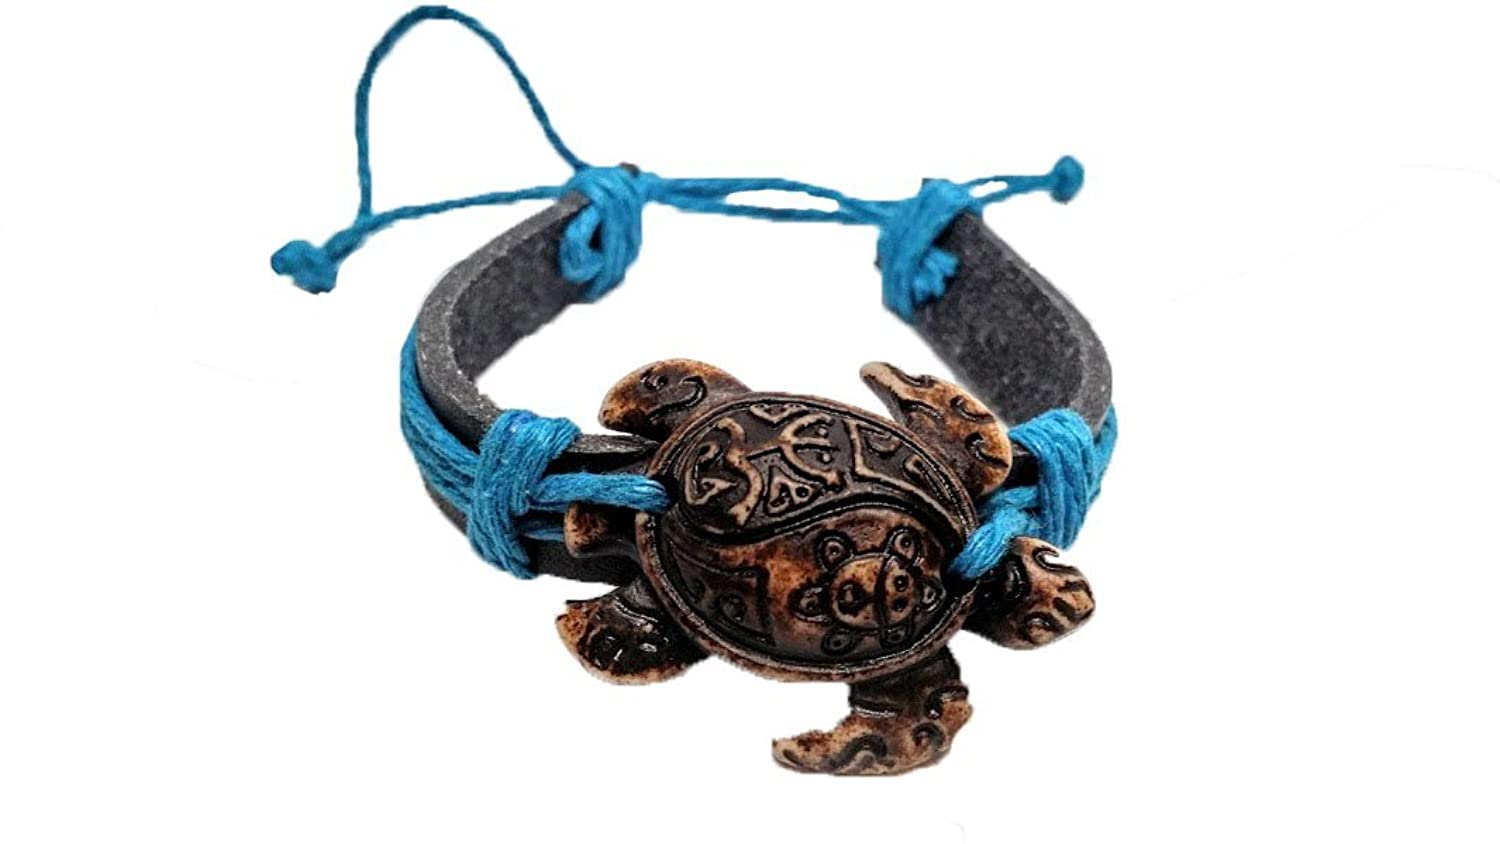 anklets bracelet sea barefoot ethnic jewelry european sandals ankle women from tortoise turtle anklet leather item in dayoff pendant for foot